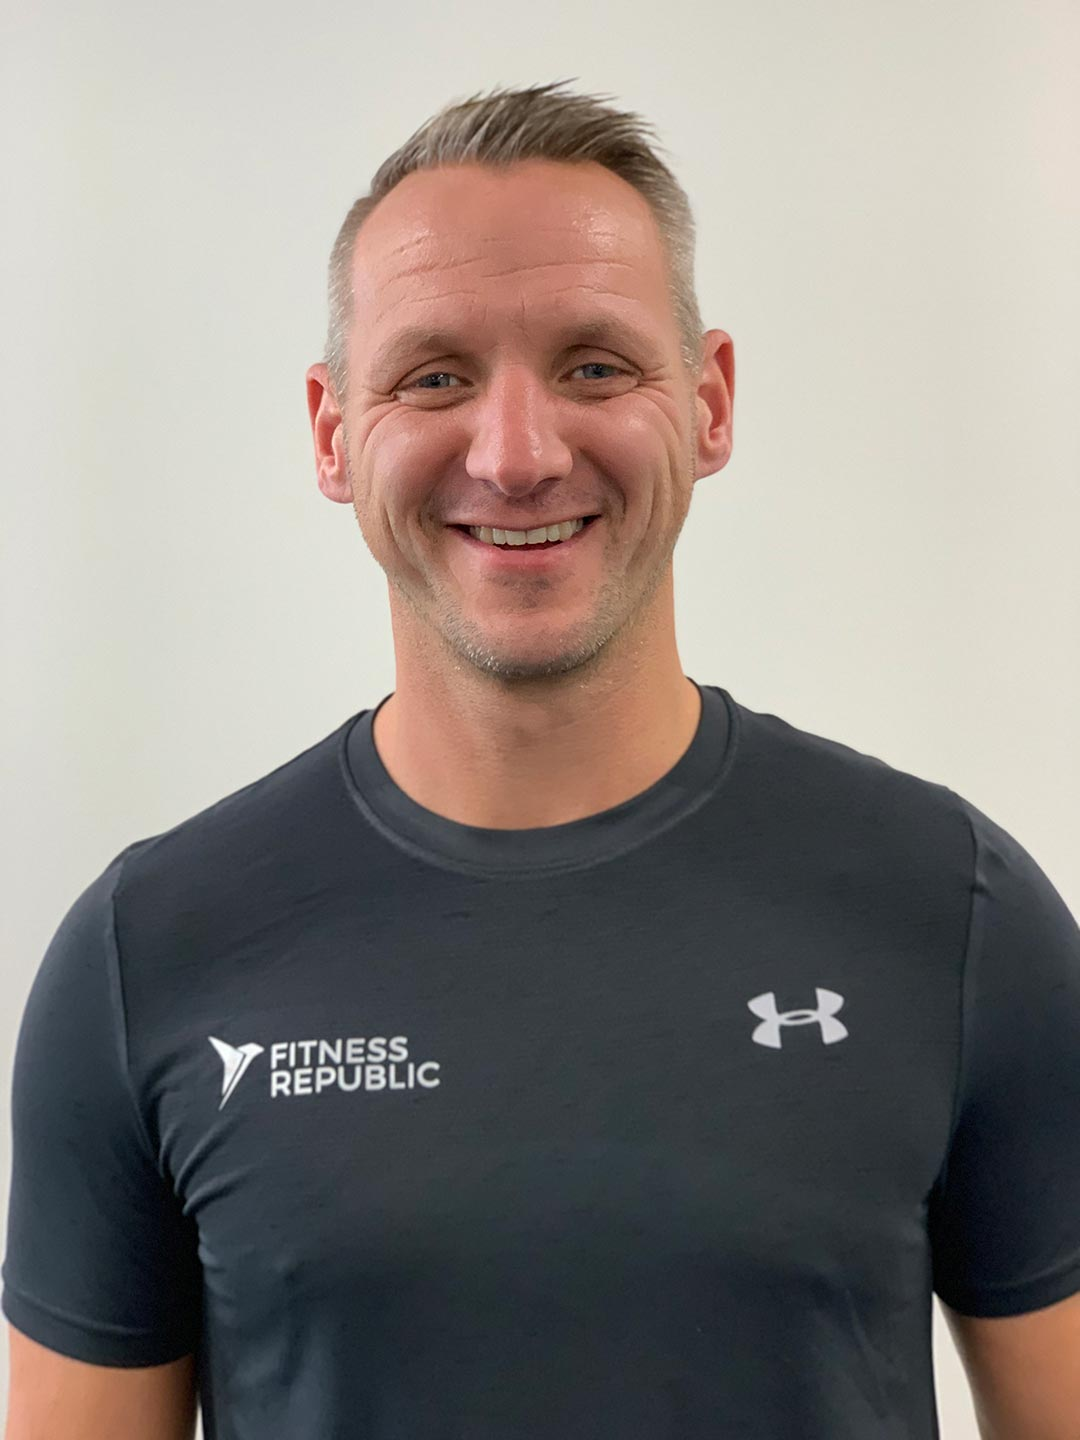 Birkenhead based personal trainer Ben. Working out of Fitness Republic.